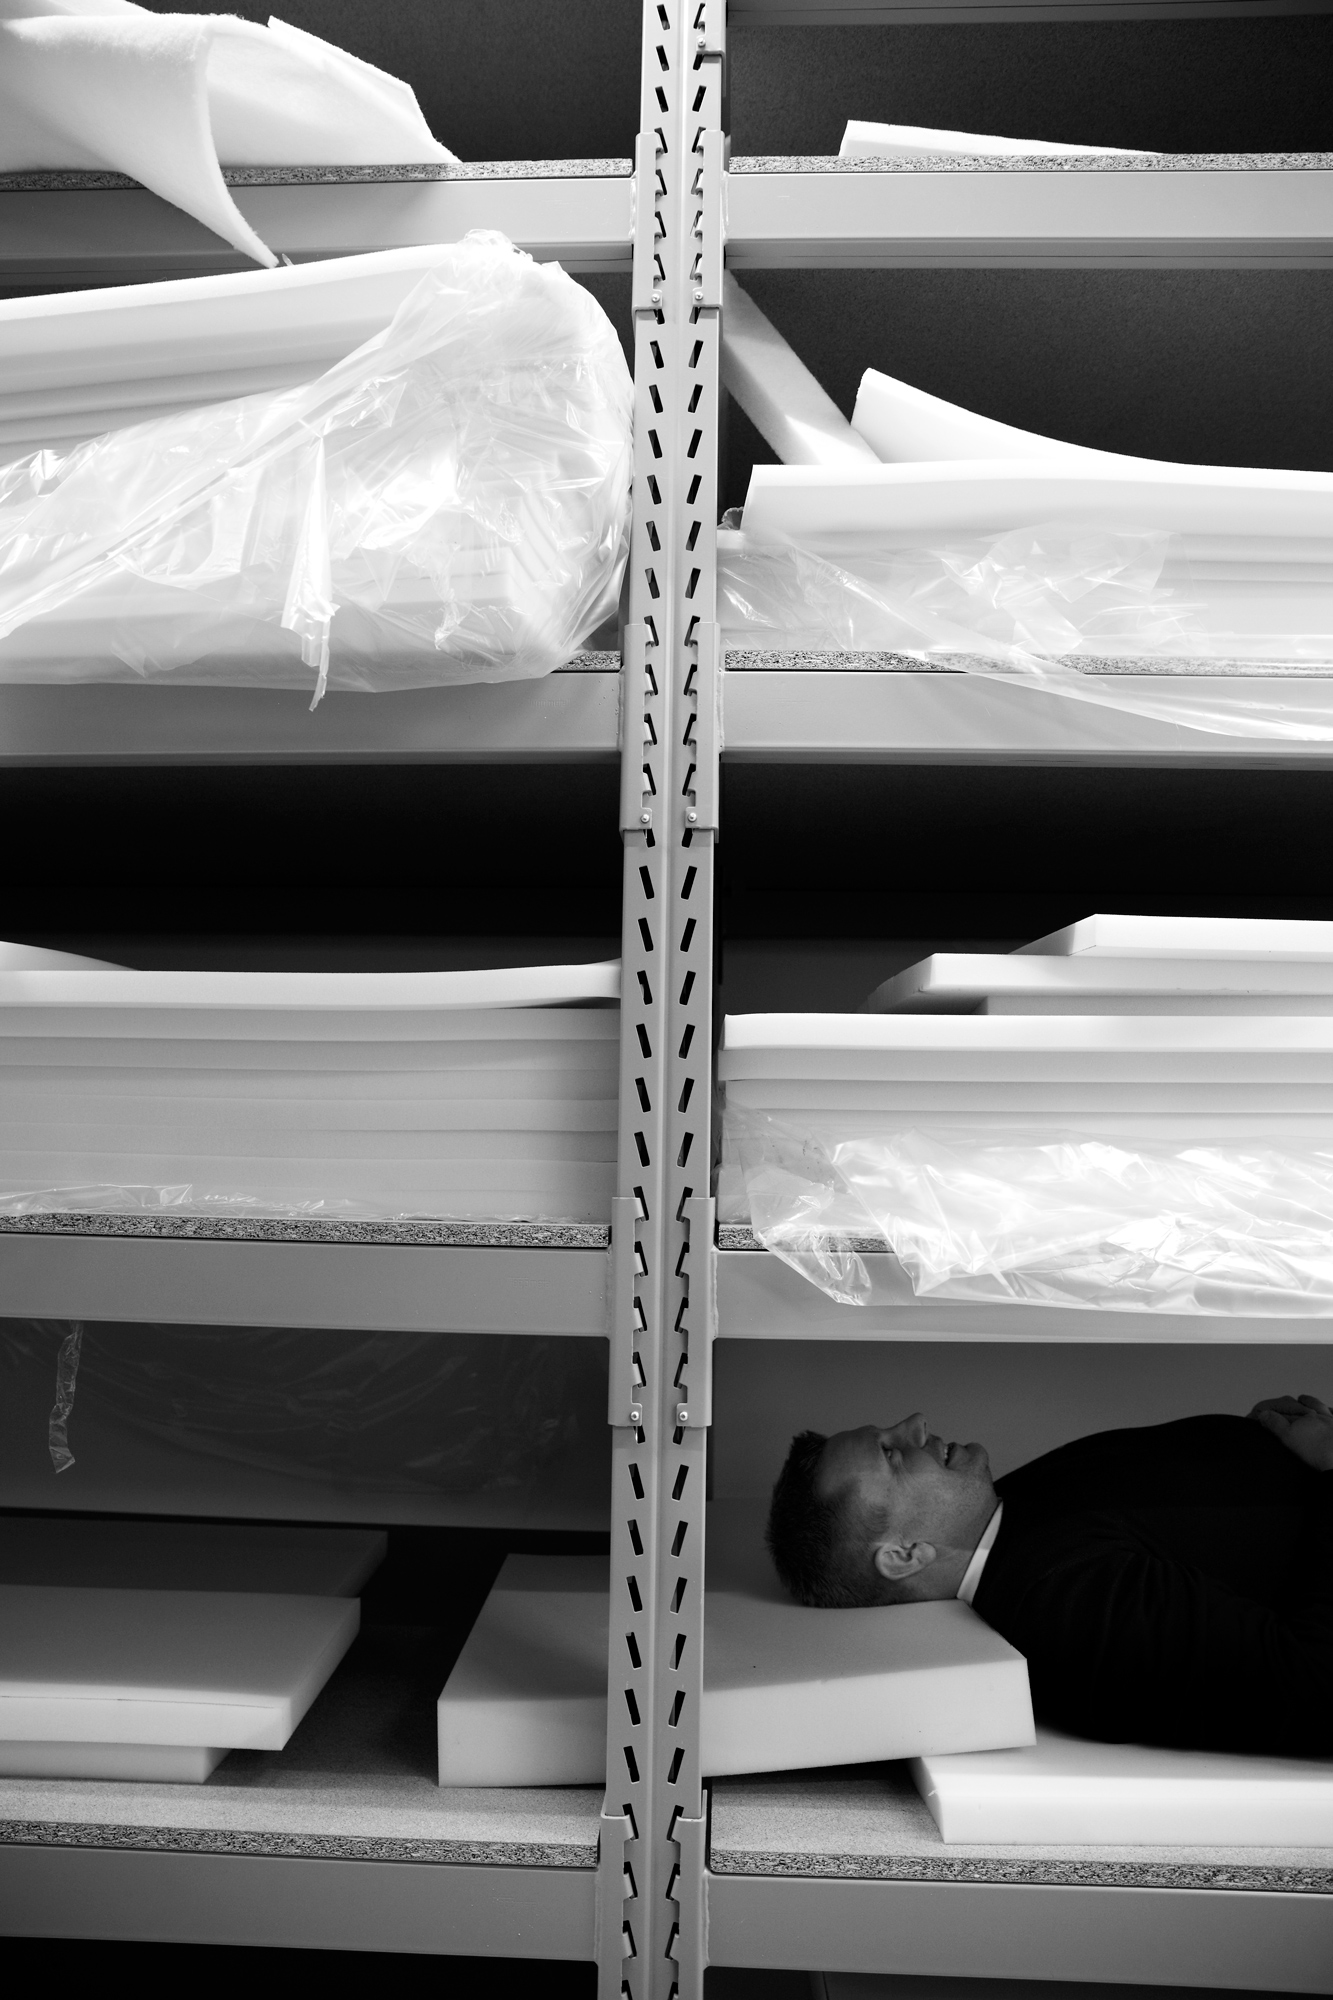 A man lying on mattresses, tucked into an industrial shelf otherwise filled with sheets of foam rubber.